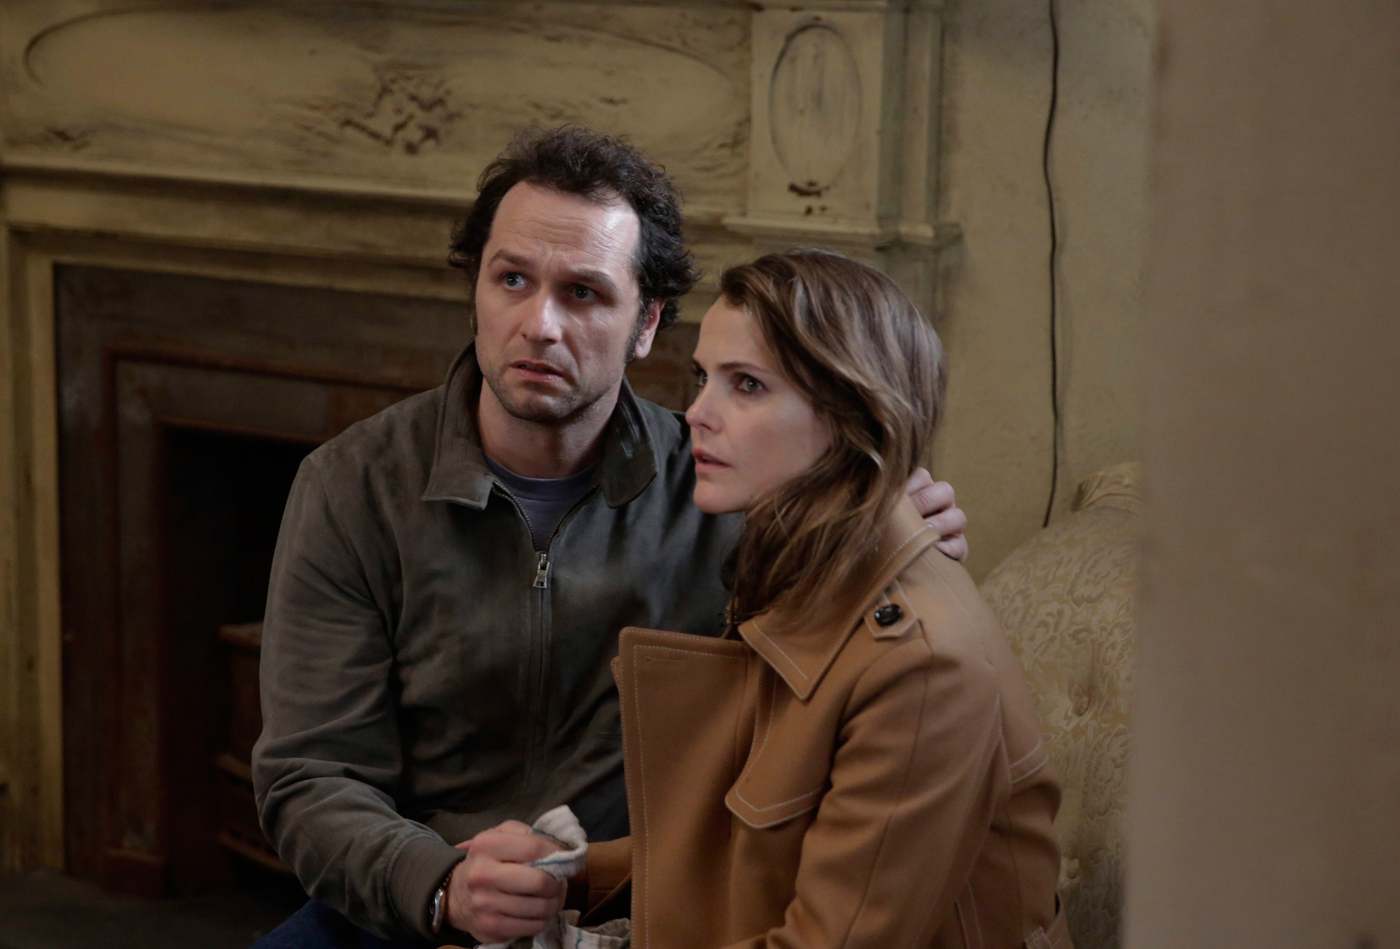 the americans recap season episode the magic of david the americans recap season 4 episode 8 the magic of david copperfield v the statue of liberty disappears the house next door slant magazine